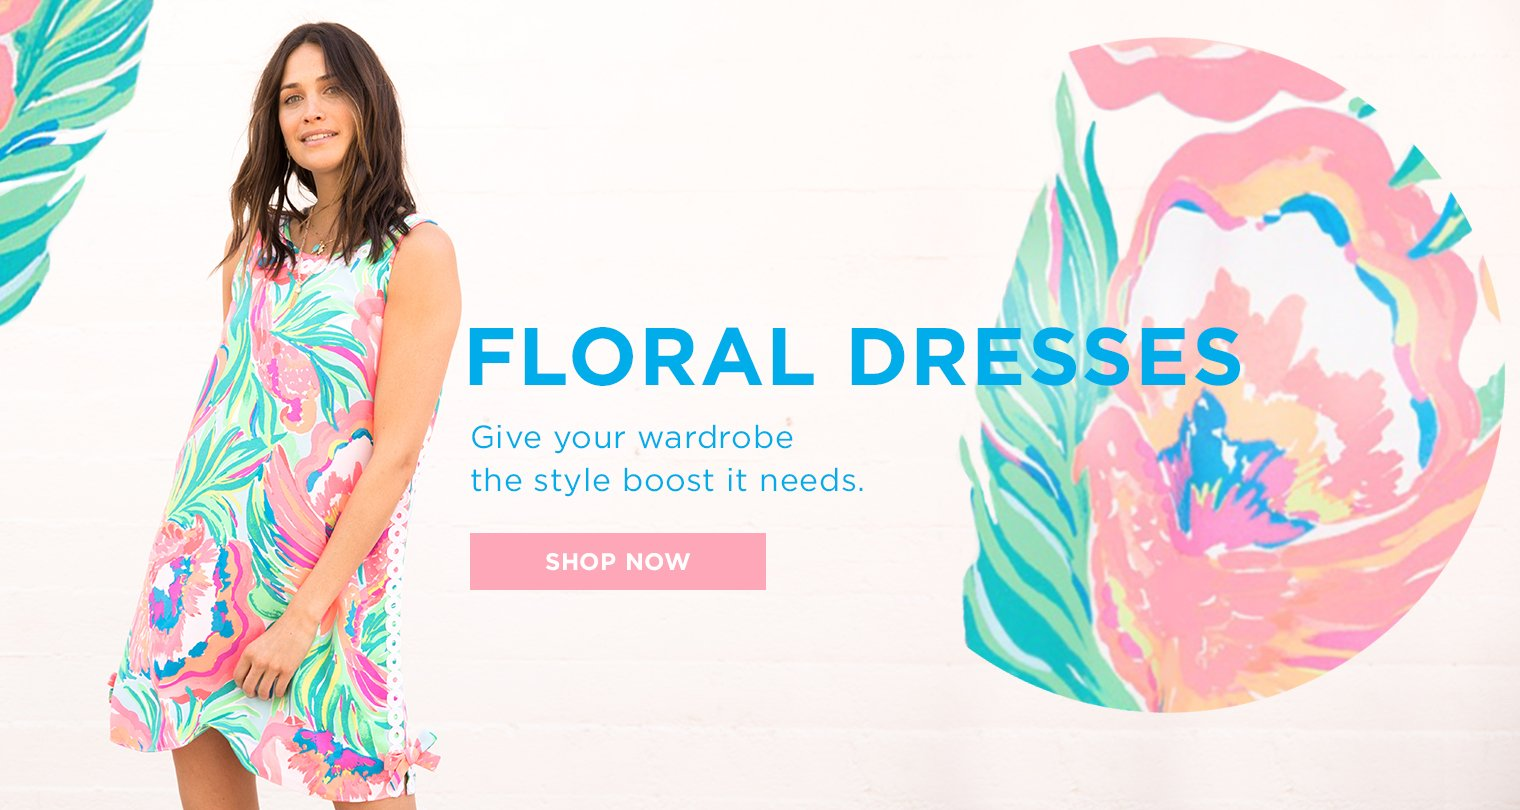 Floral Dresses. Give your wardrobe the style boost it needs. Shop Now.